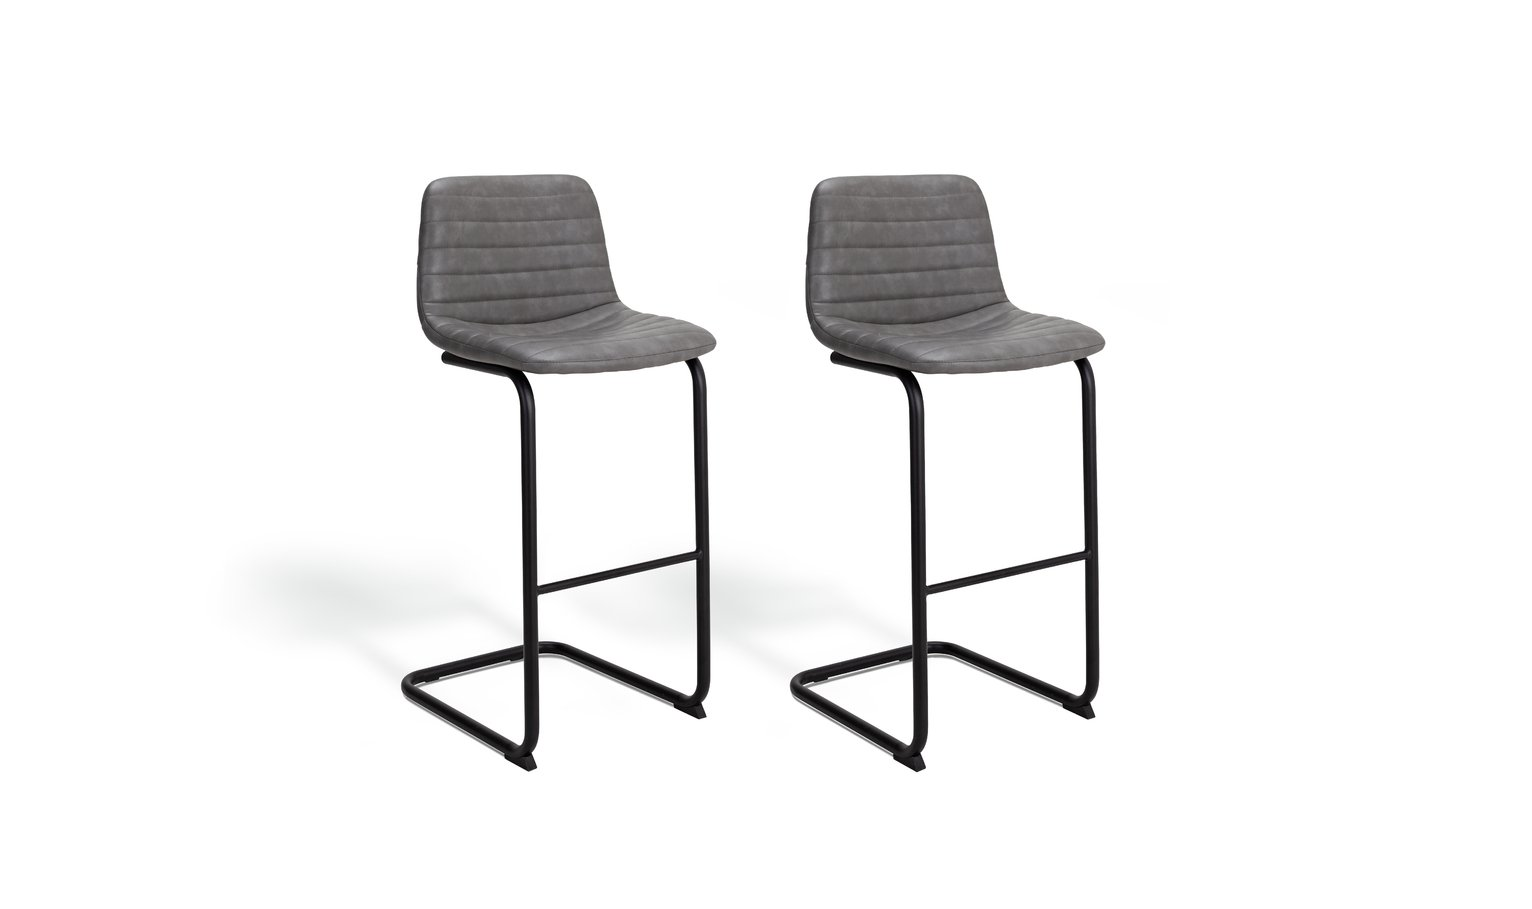 Argos Home Logan Pair of Faux Leather Bar Stools - Grey